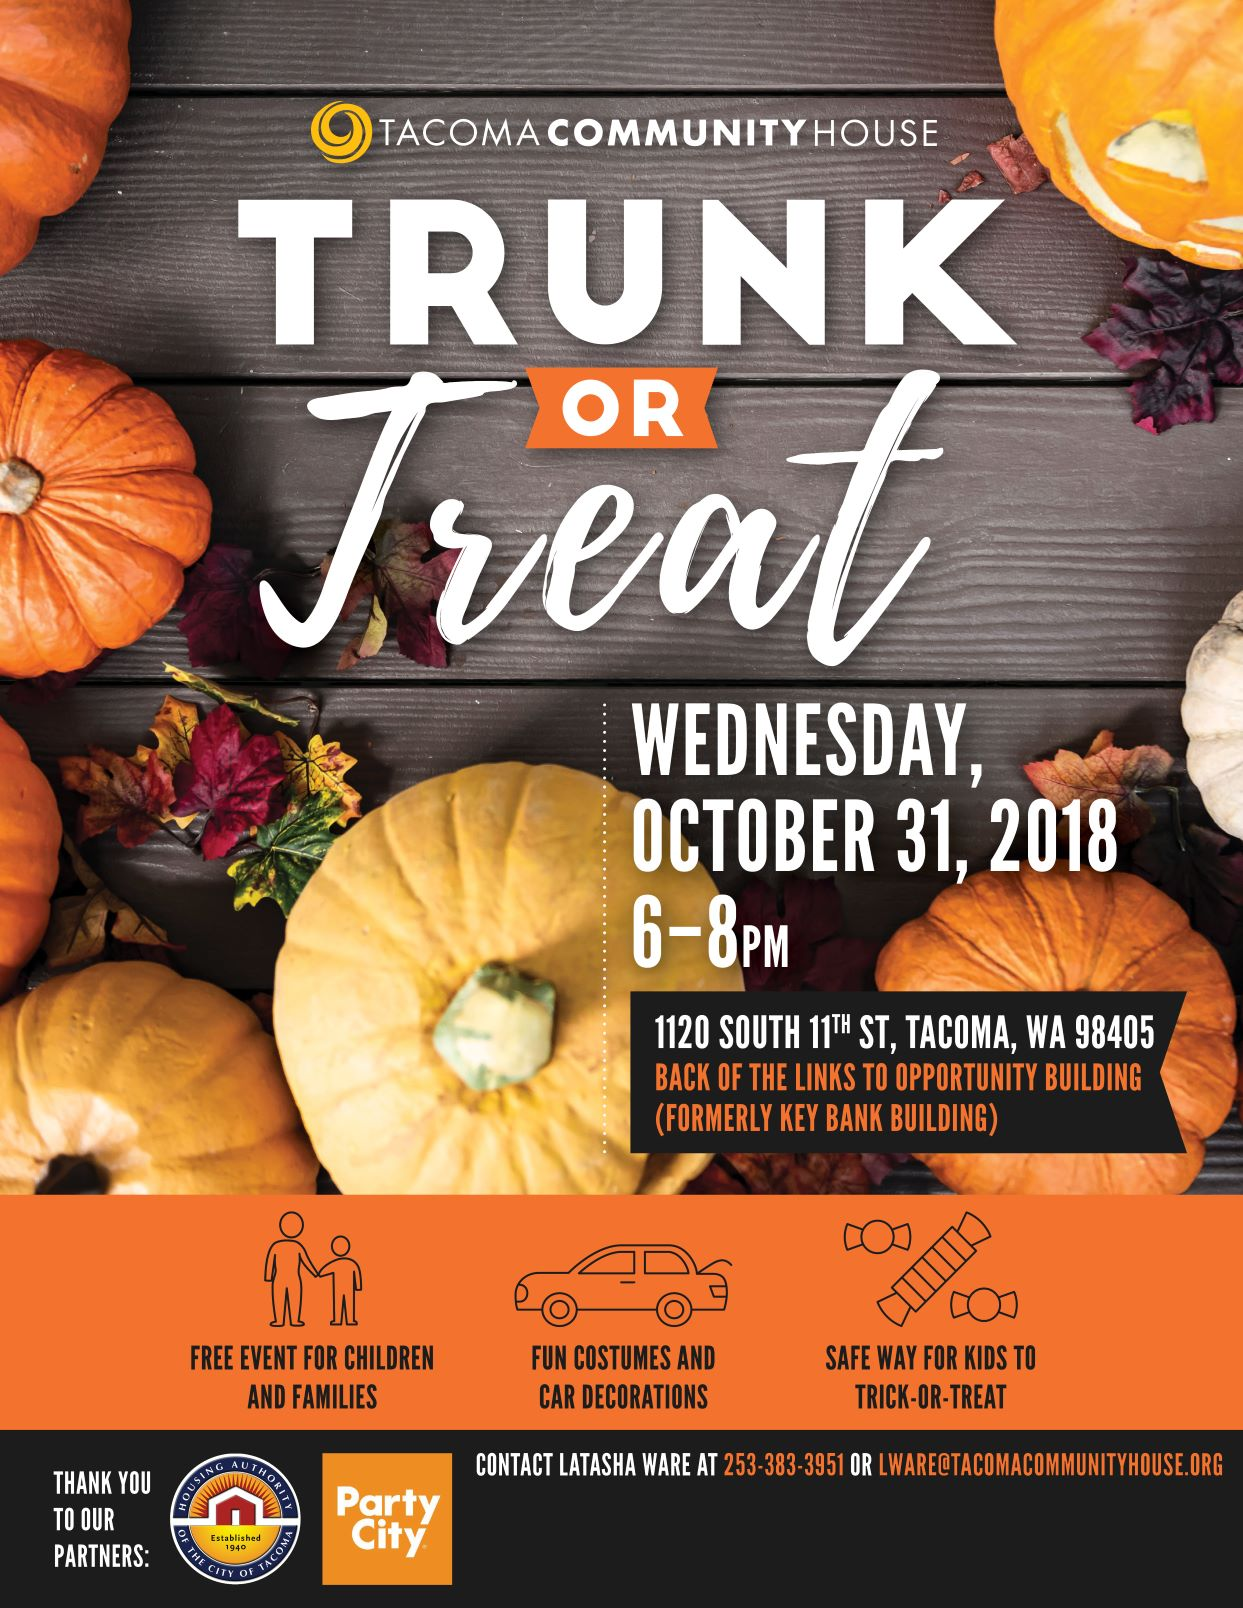 trunk-or-treat-poster.png